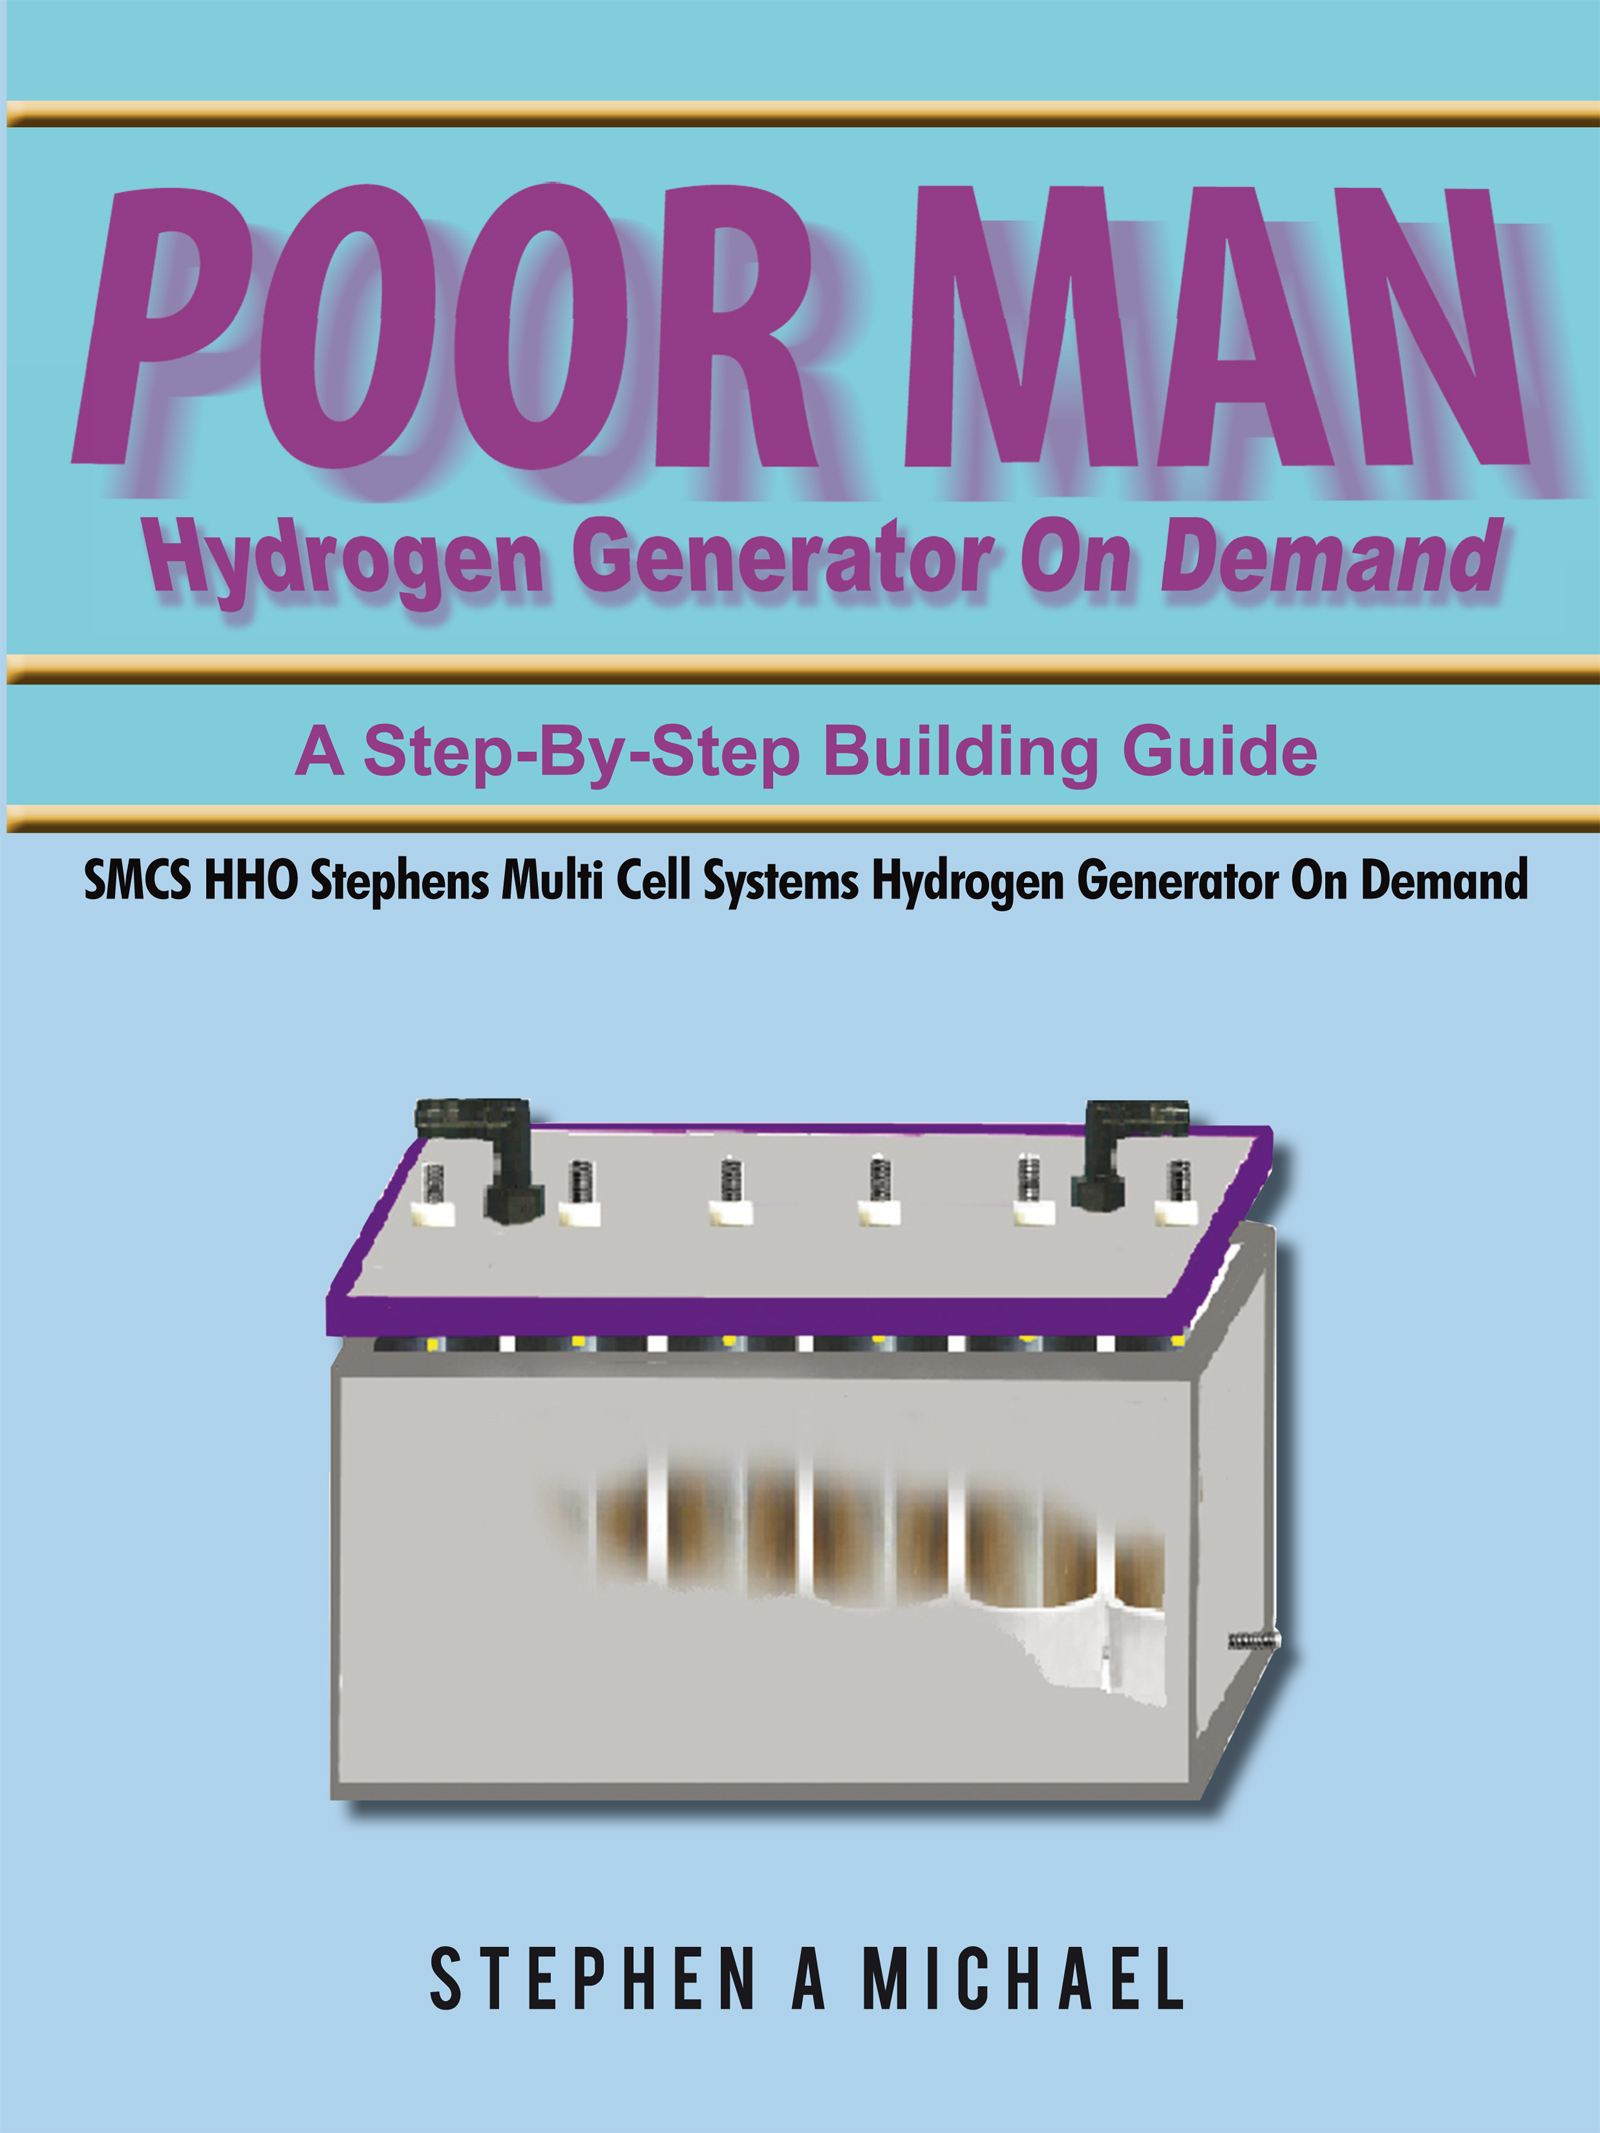 Poor Man Hydrogen Generator On Demand By: Stephen A Michael